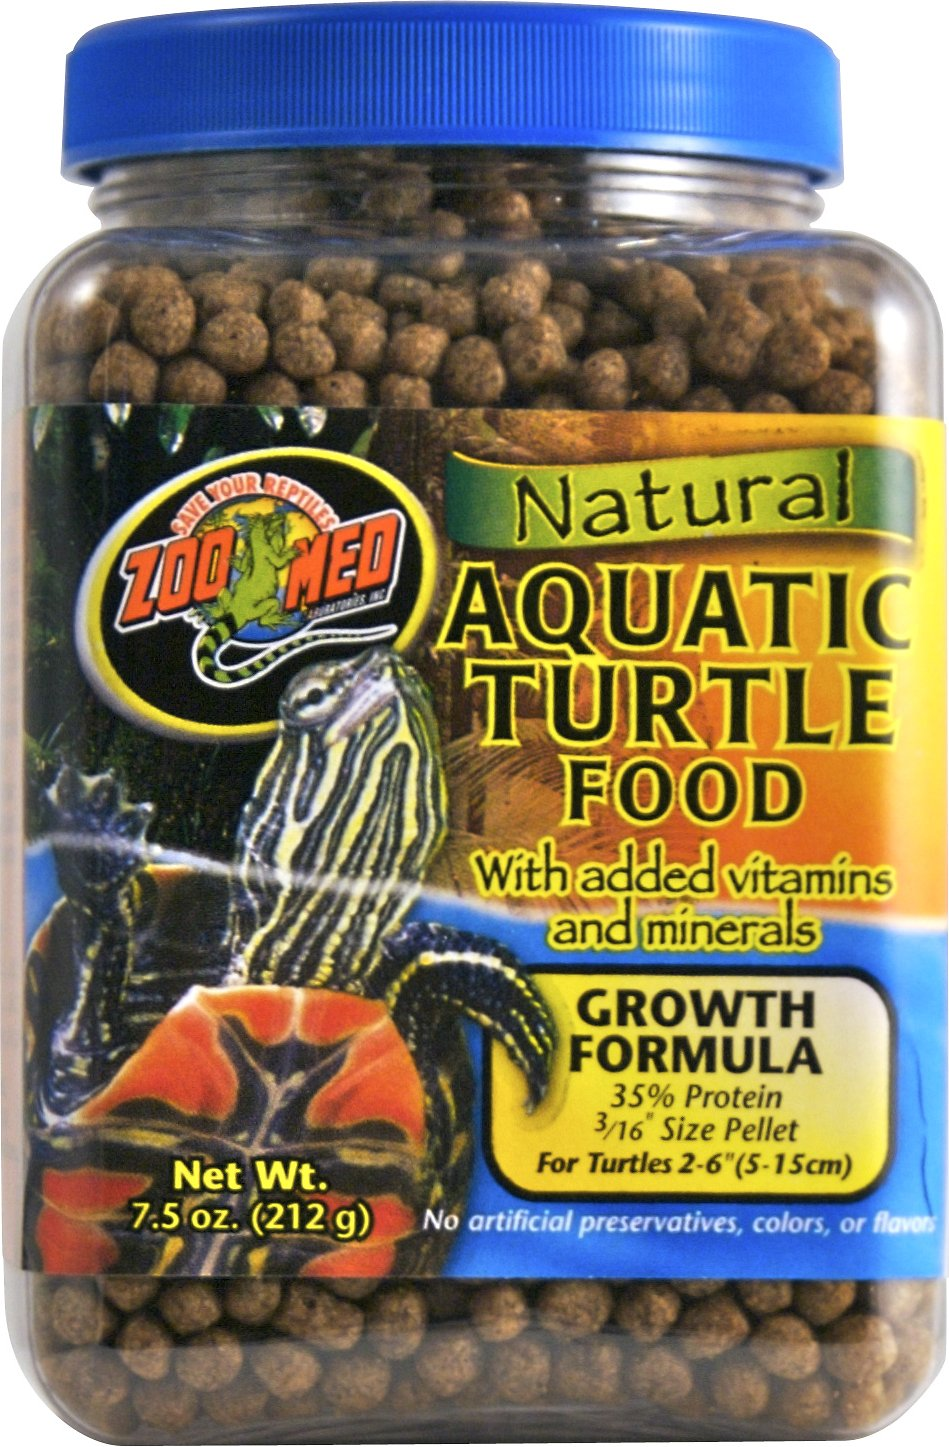 Zoo Med Natural Aquatic Growth Formuia Turtle Food, 7.5-oz jar